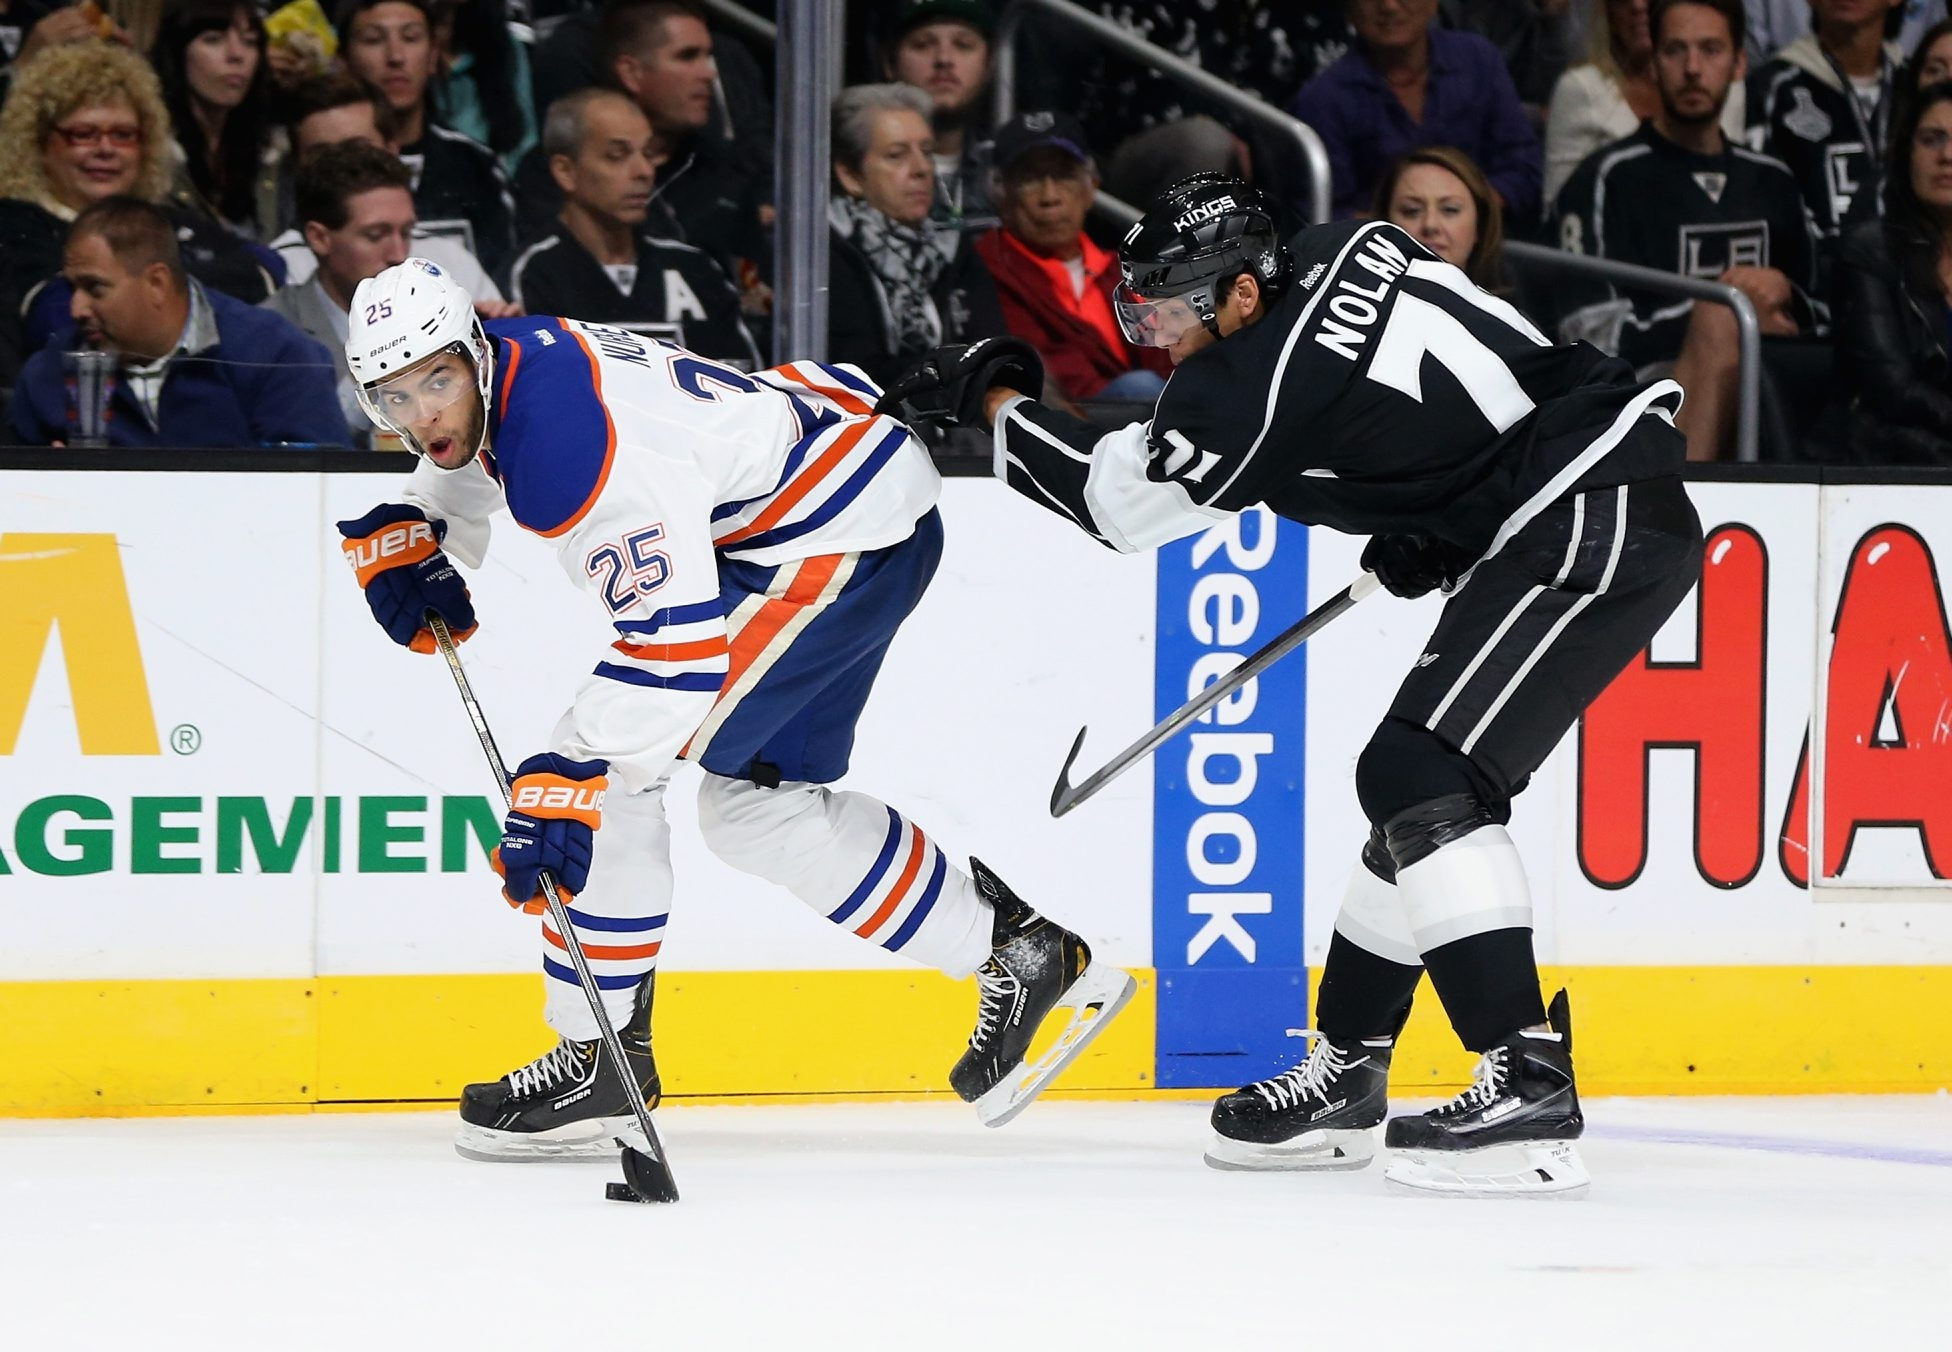 Jordan Nolan of the Kings, right, playing against Edmonton's Darnell Nurse, says he works harder when his father, Sabres coach Ted Nolan, is in the same building.